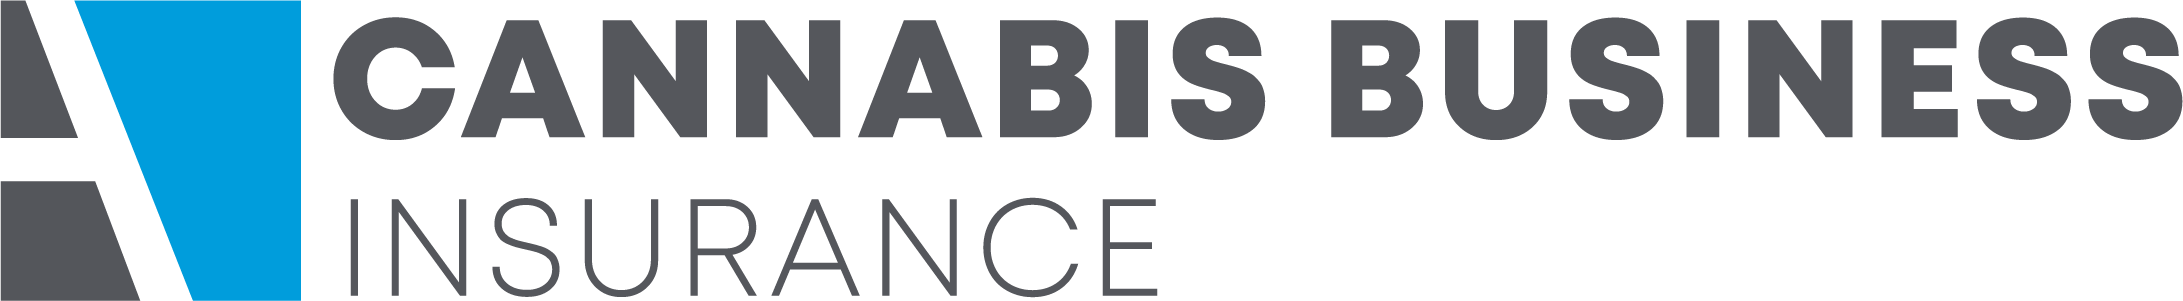 Cannabis Business Insurance